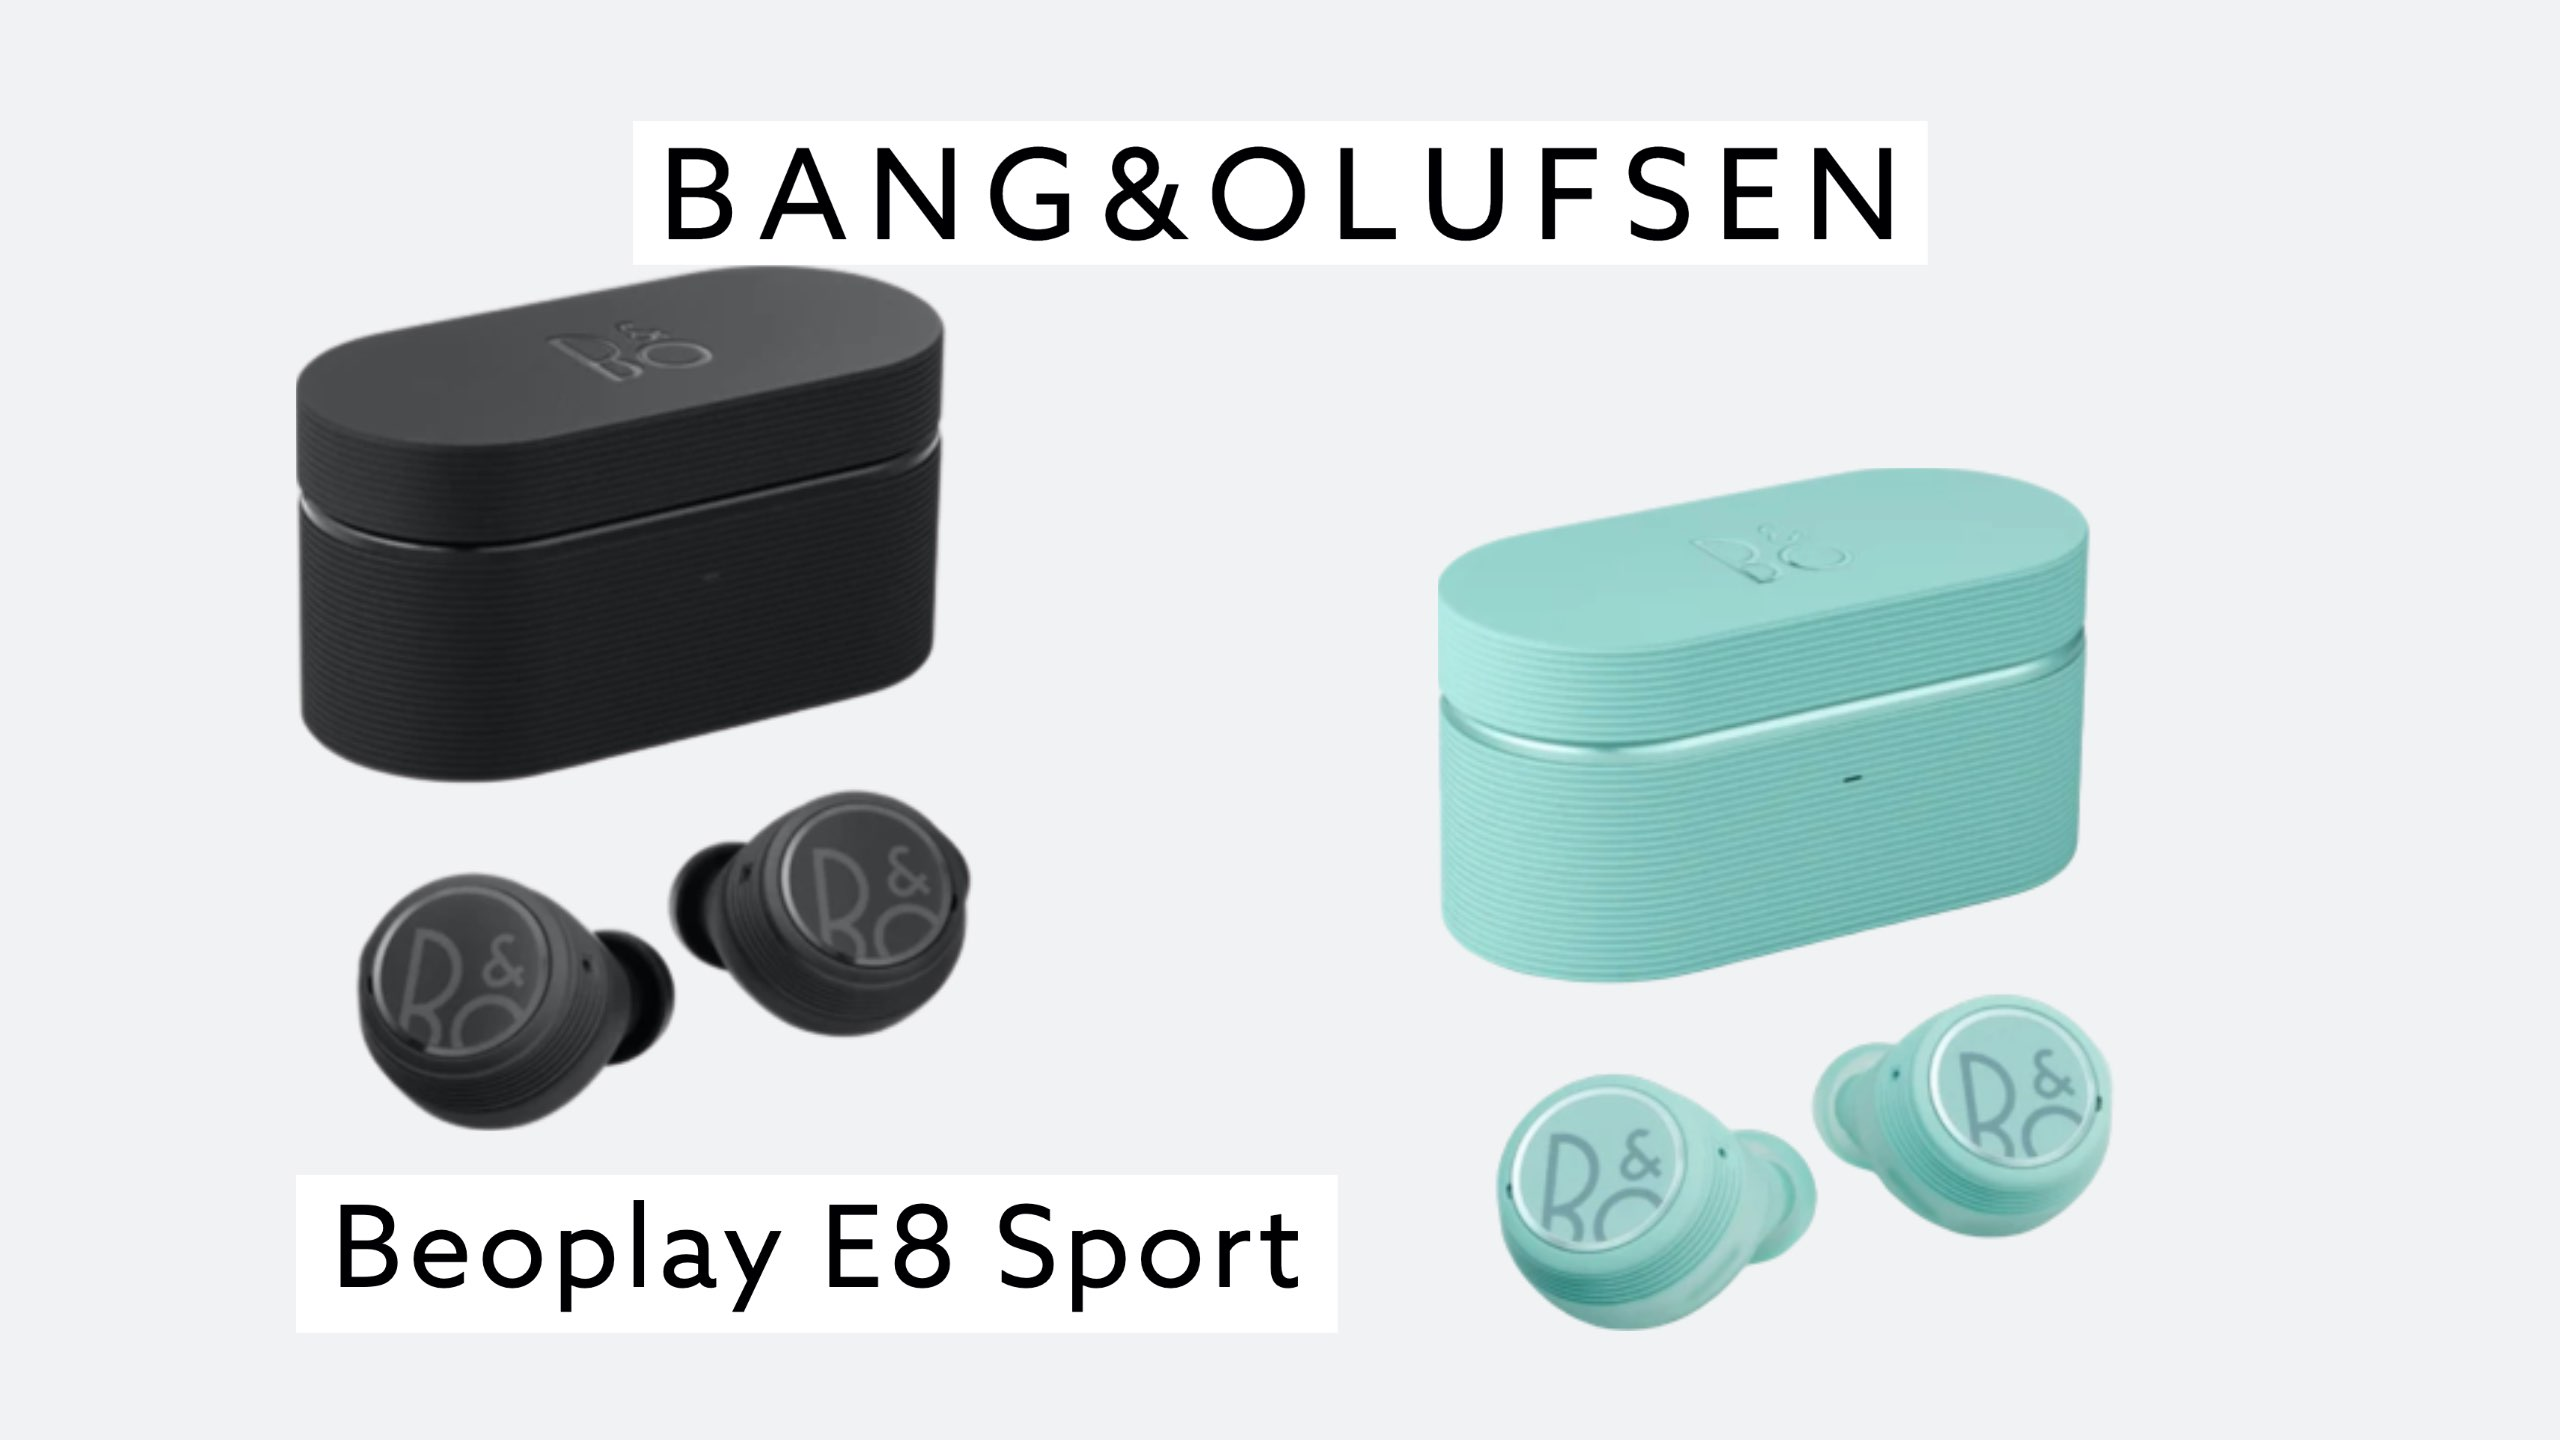 Bang&Olufsen Beoplay E8 Sport 特徴や印象などまとめ【買うべき?】